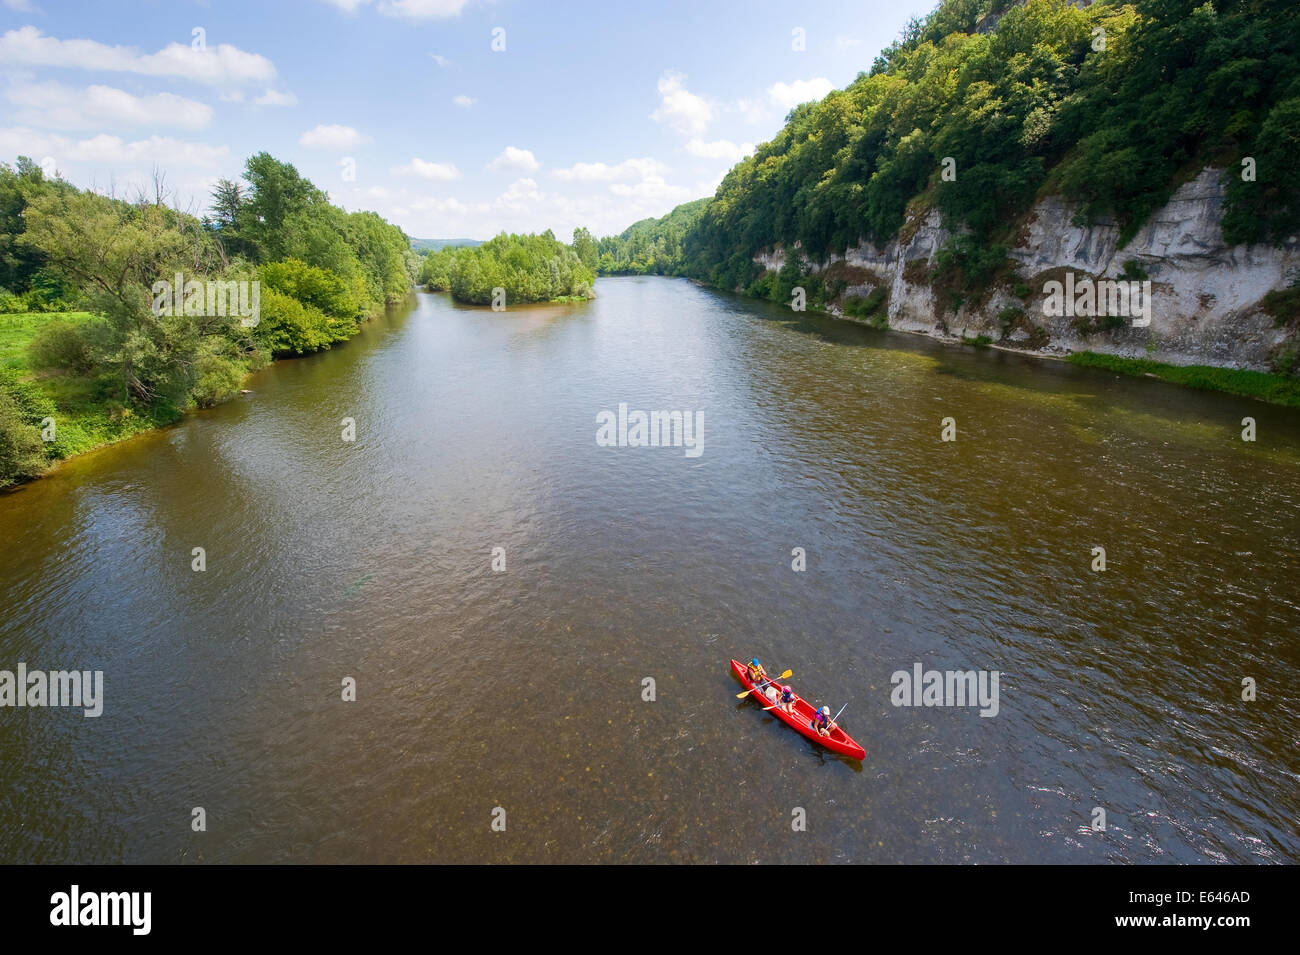 Canoeing on the river Dordogne in France - Stock Image